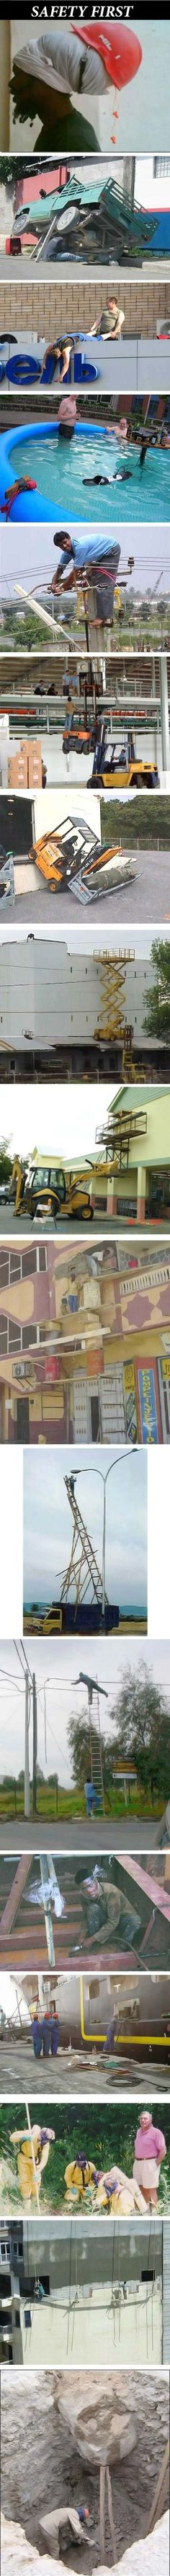 Safety First Complilation, Click the link to view today's funniest pictures!